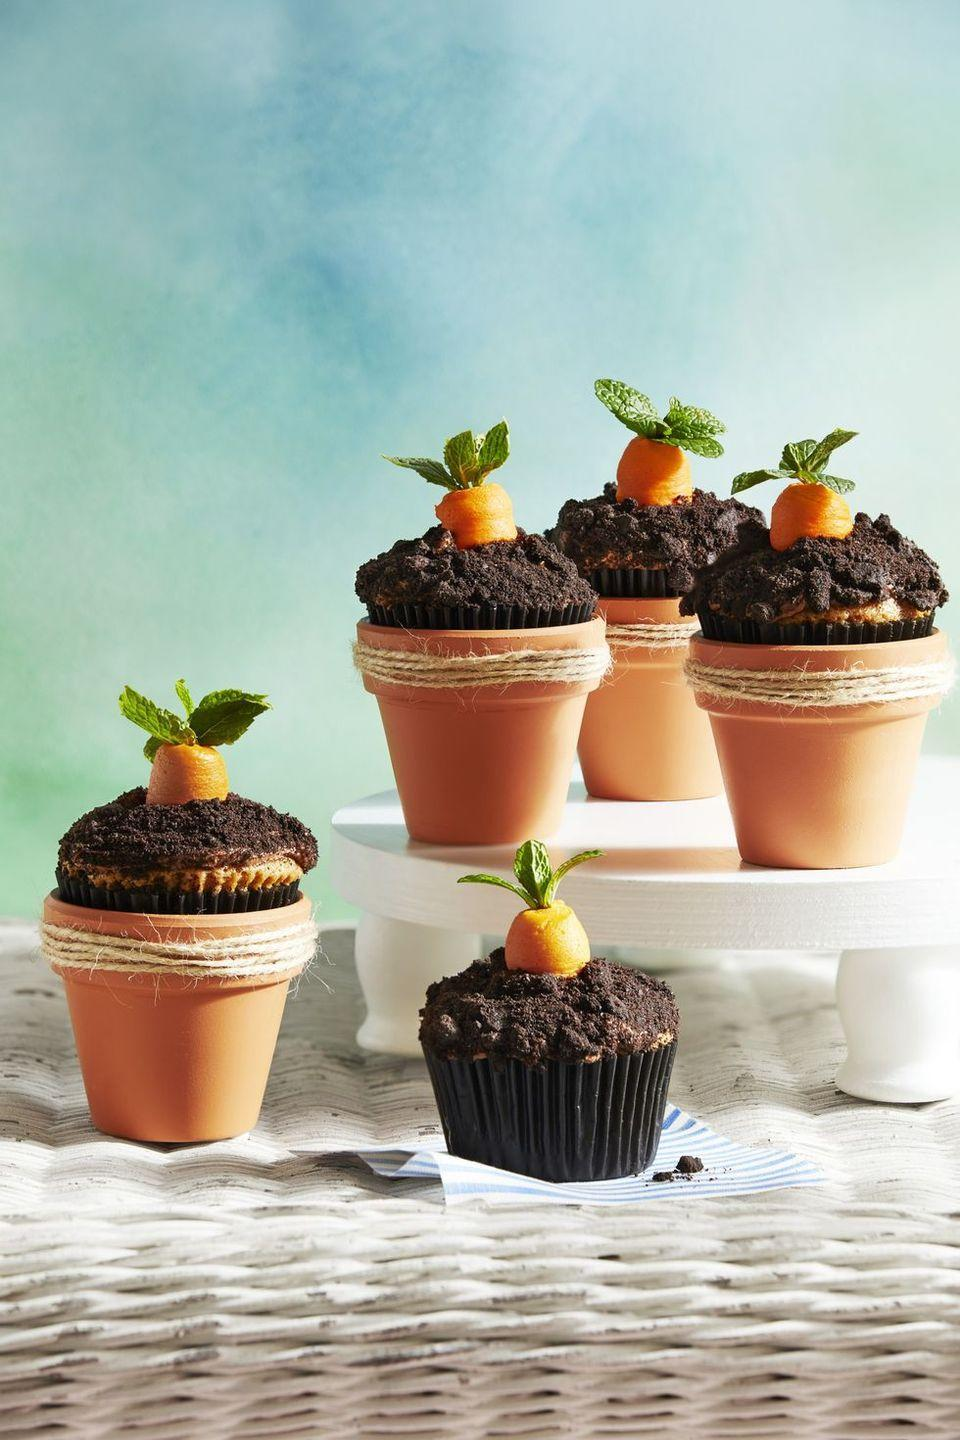 "<p>Top carrot cupcakes with orange cream cheese frosting and a mint sprig to make these fall harvest-inspired sweets. Place them in mini terra-cotta pots for the cutest-ever dessert!</p><p><em><a href=""https://www.countryliving.com/food-drinks/a30876020/carrot-patch-cupcakes-recipe/"" rel=""nofollow noopener"" target=""_blank"" data-ylk=""slk:Get the recipe from Country Living »"" class=""link rapid-noclick-resp"">Get the recipe from Country Living »</a></em></p>"